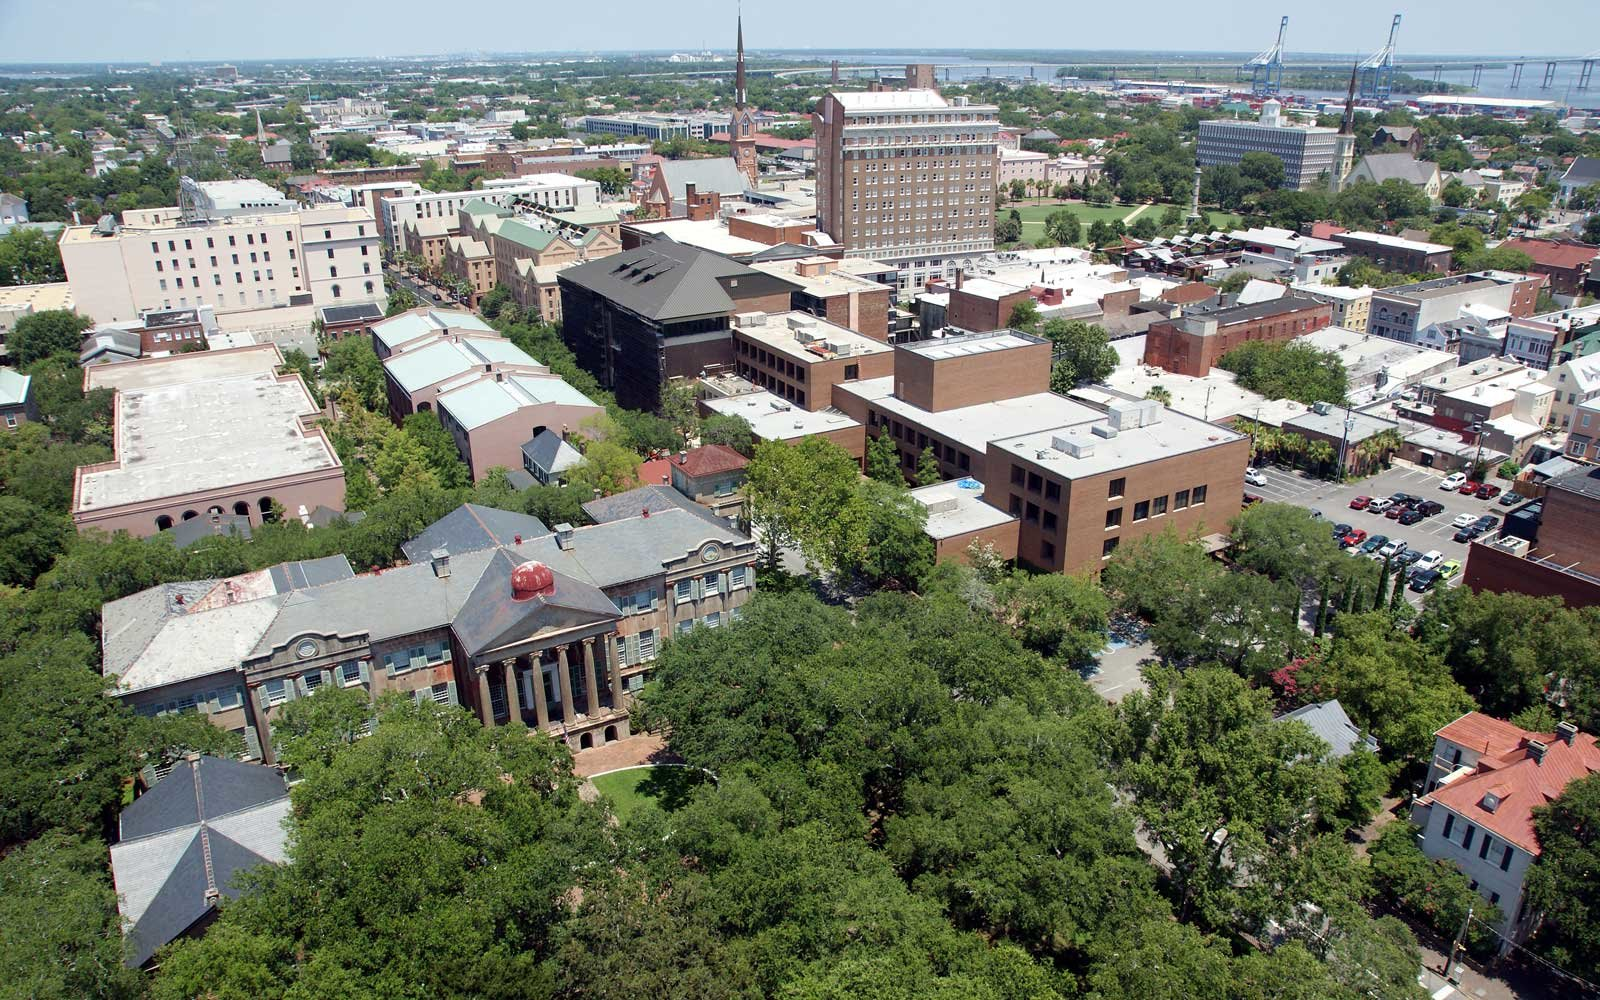 Aerial View of College of Charleston Campus